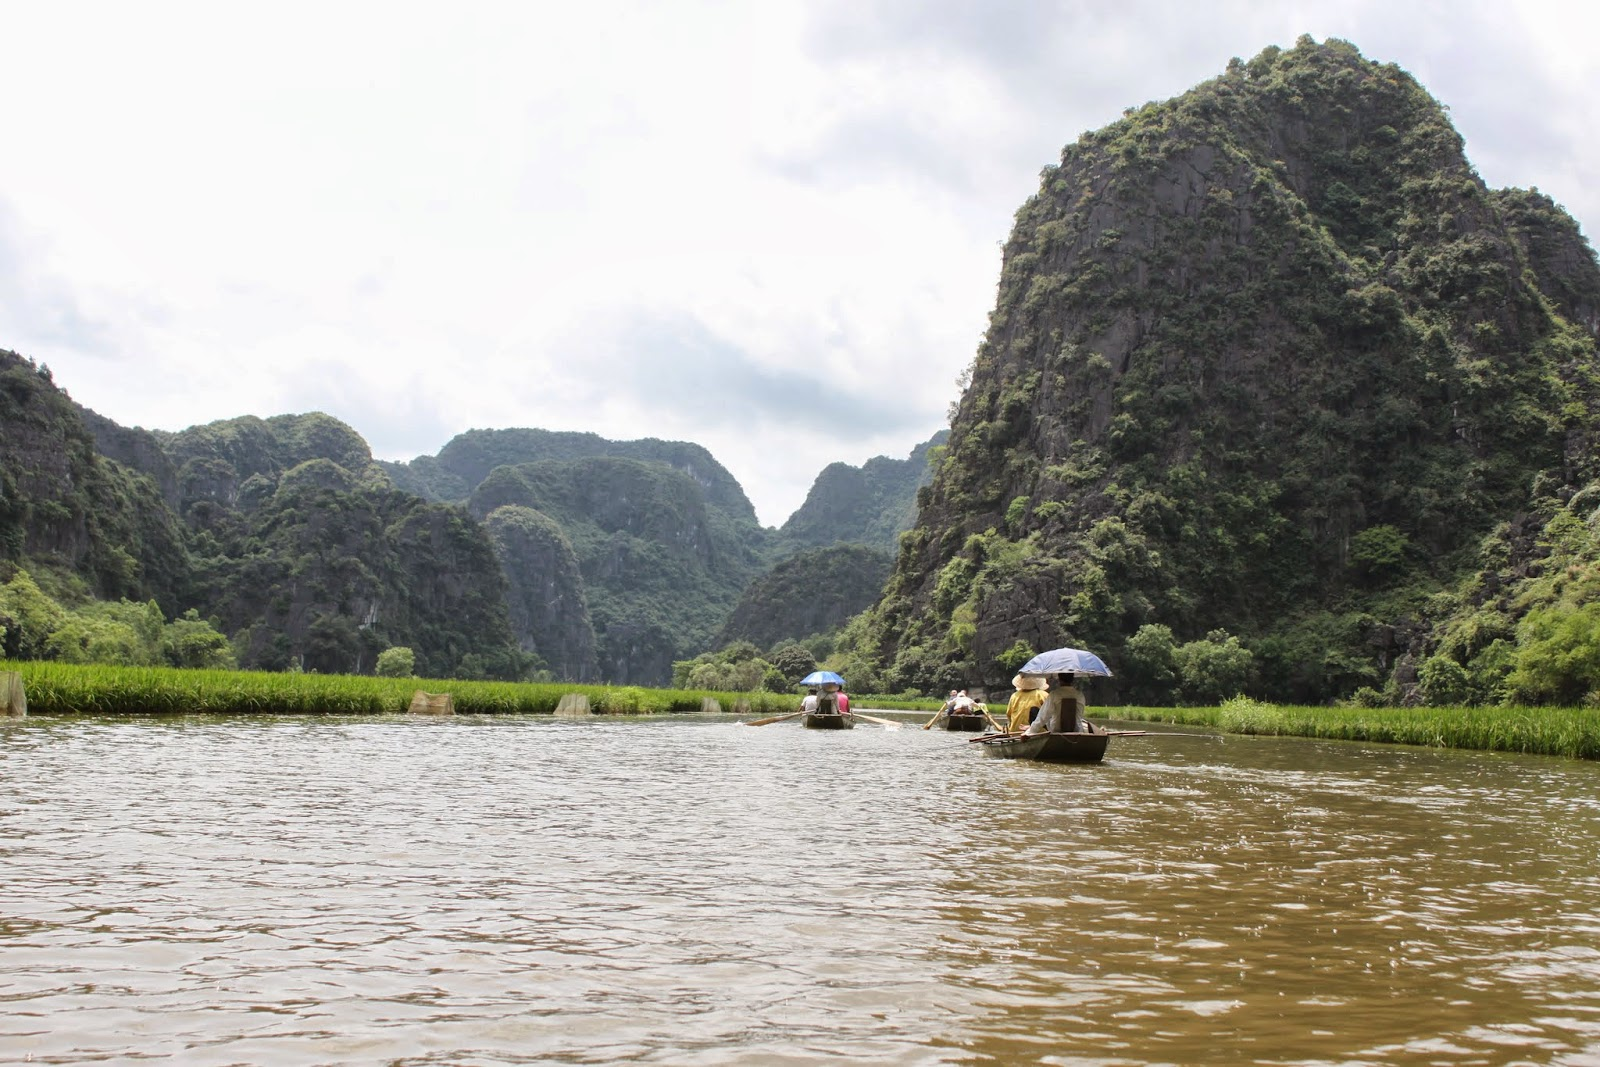 It's gorgeous landscape scenery as we headed out from the first cave of cave Hang Ca at Tam Coc near the city of Ninh Bình in northern Vietnam